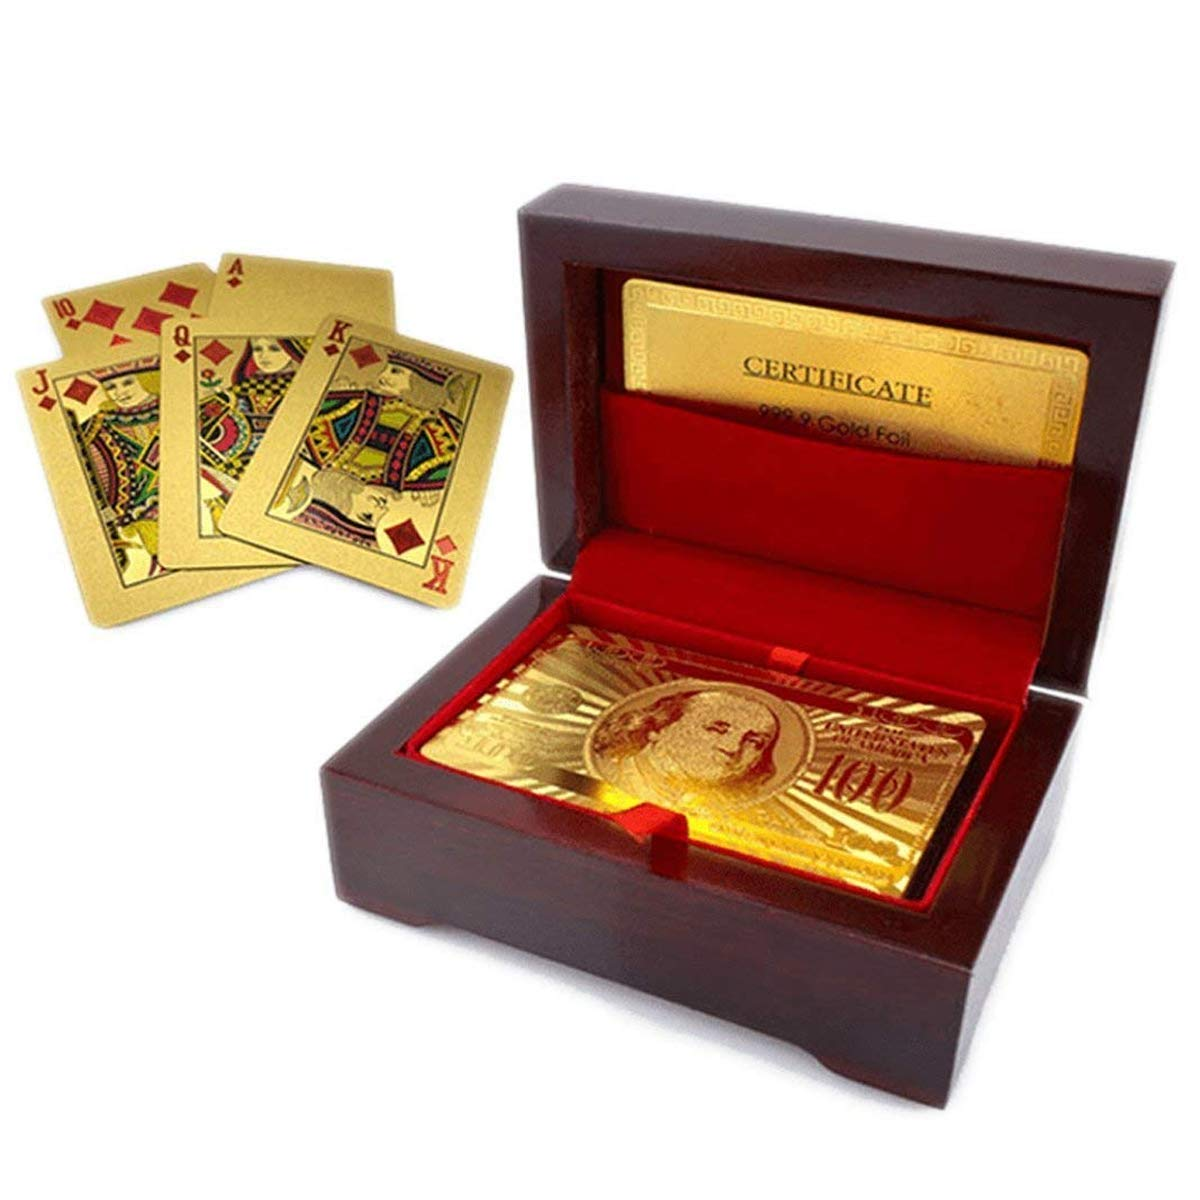 Luxurious 24K Gold Plated Playing Cards with Case - Make Your Magic Tricks More Luxurious & Creative for Family & Friends by Free Ship Deal